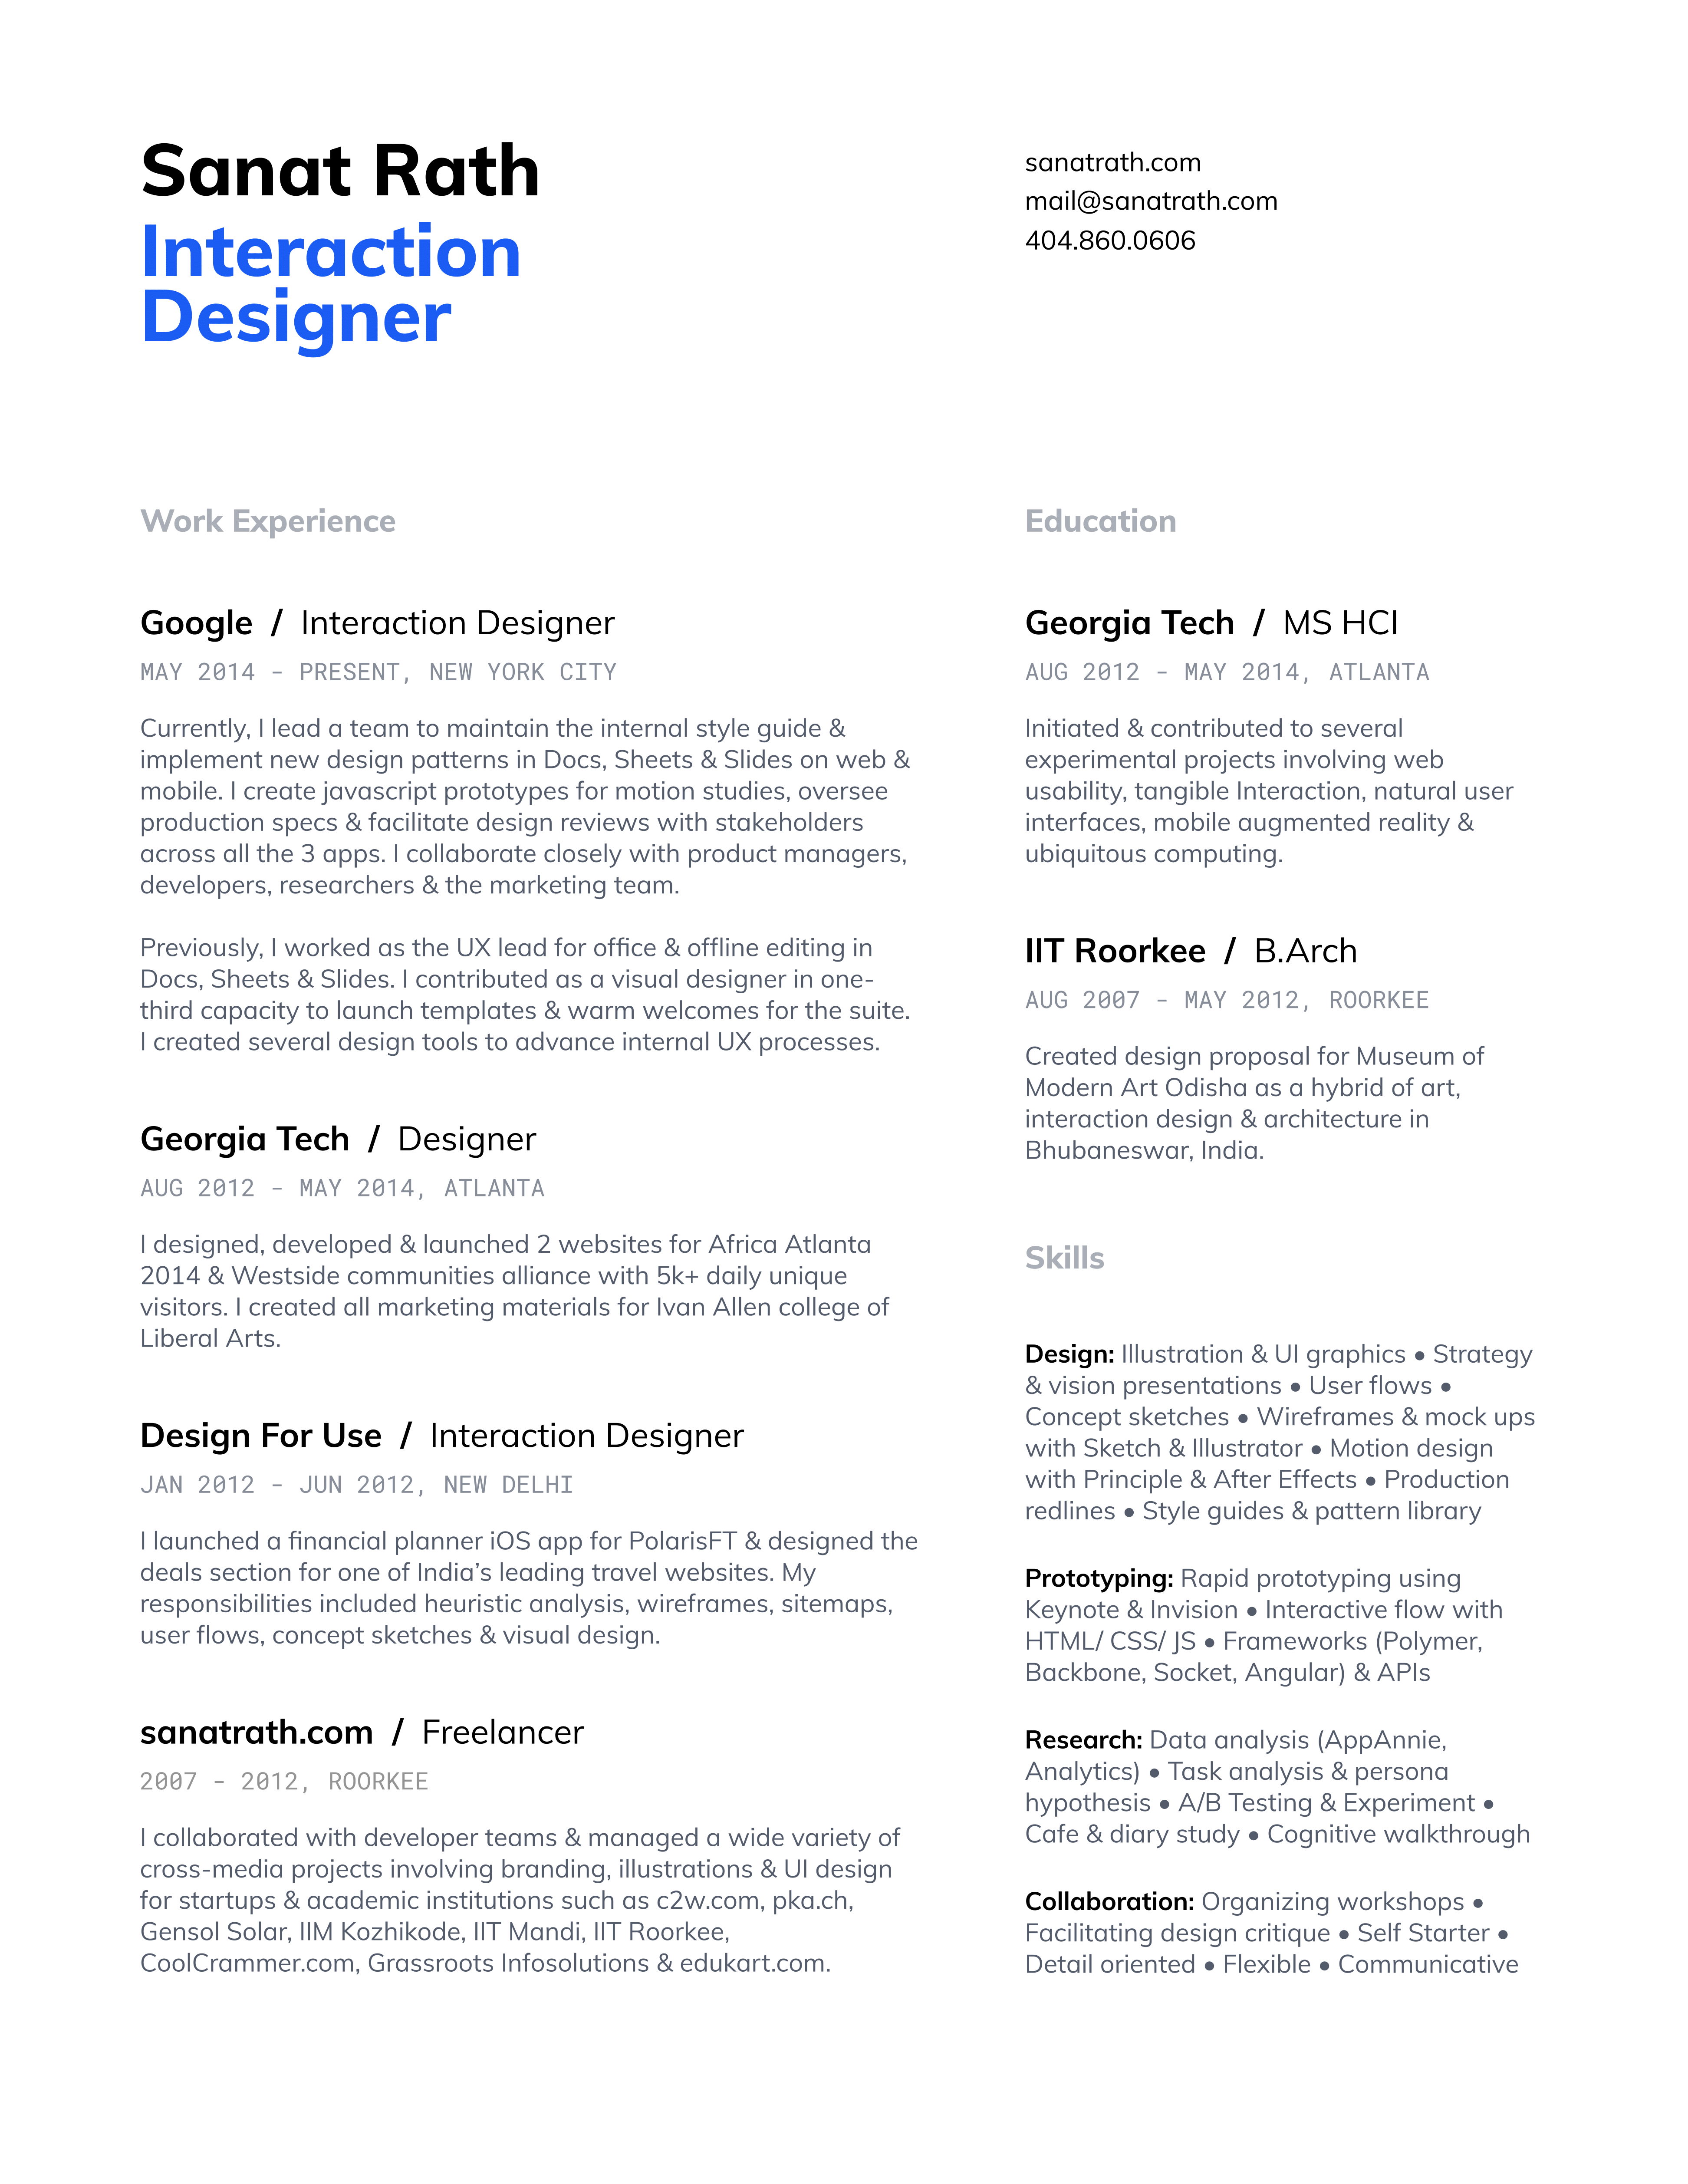 Ux Designer Resume How To Write A Great Ux Designer Cv Resume 1 Ux Design Portfolio Resume Design Ux Design